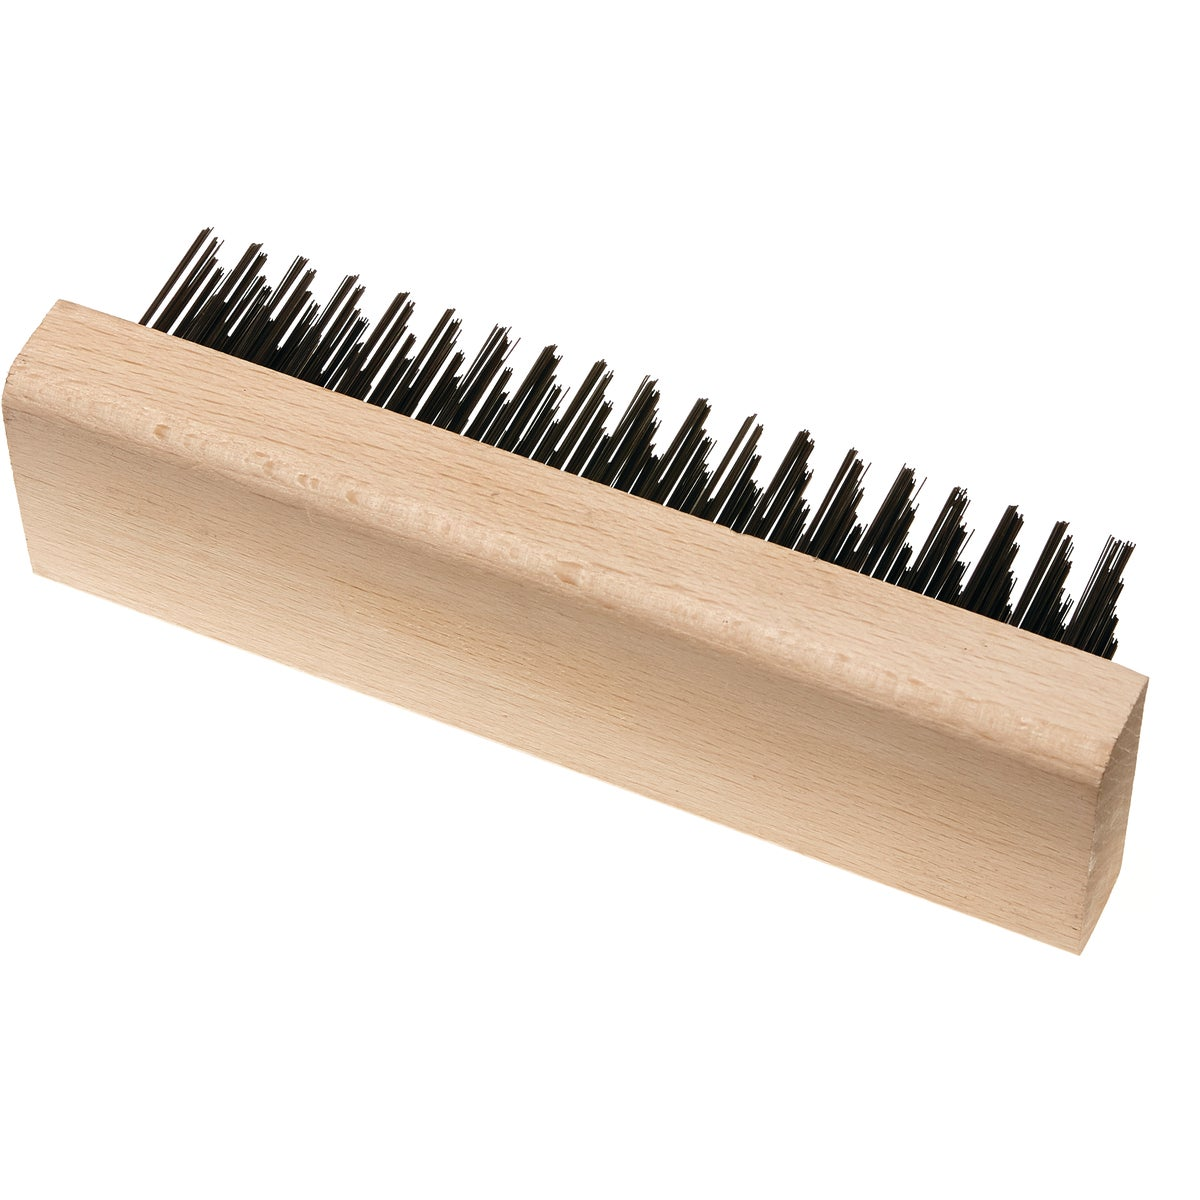 6X16 ROW WIRE BRUSH - 619 by Premier Paint Roller